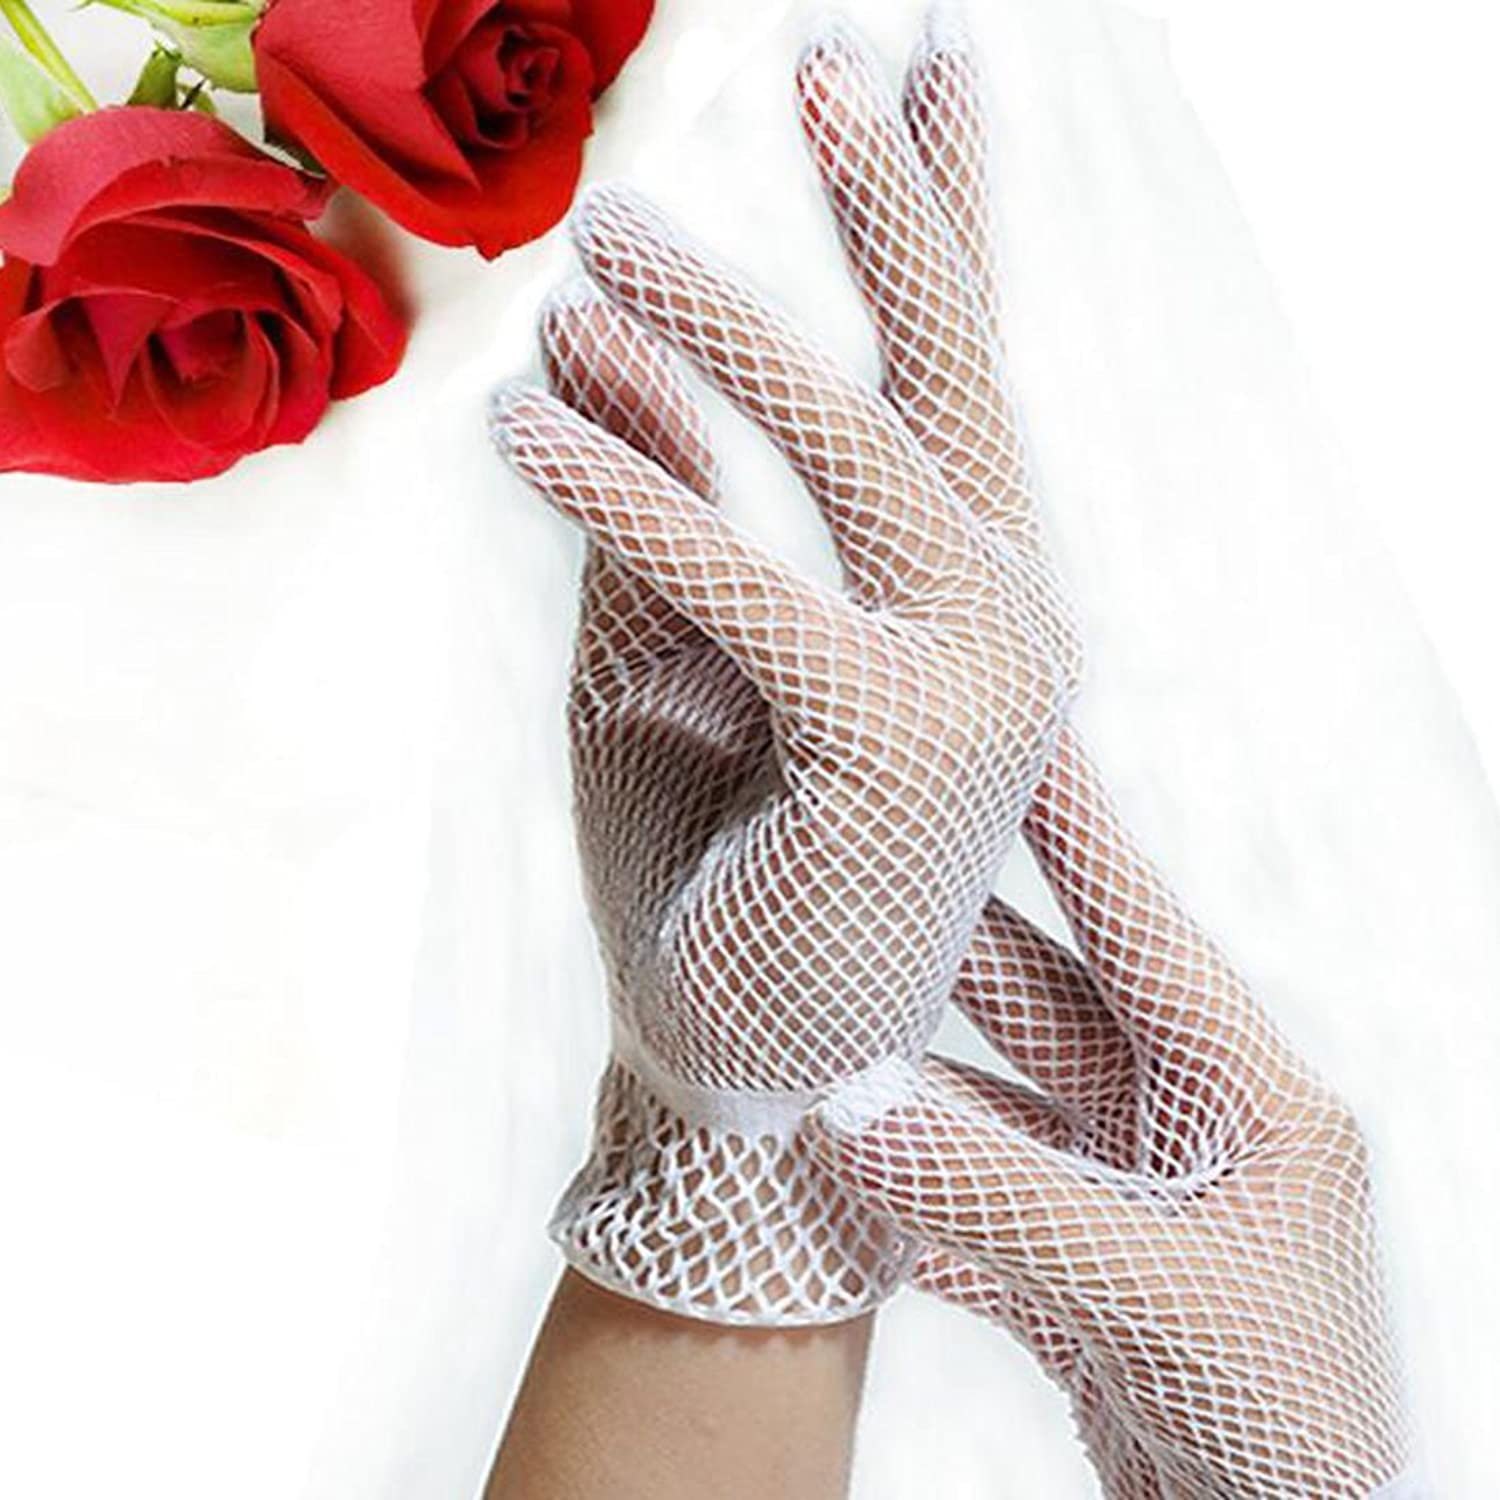 Edwardian Style Clothing 1 Pair Fishnet Mesh Gloves Fashion Women Gloves Summer UV Protection Lace Glove White $2.11 AT vintagedancer.com